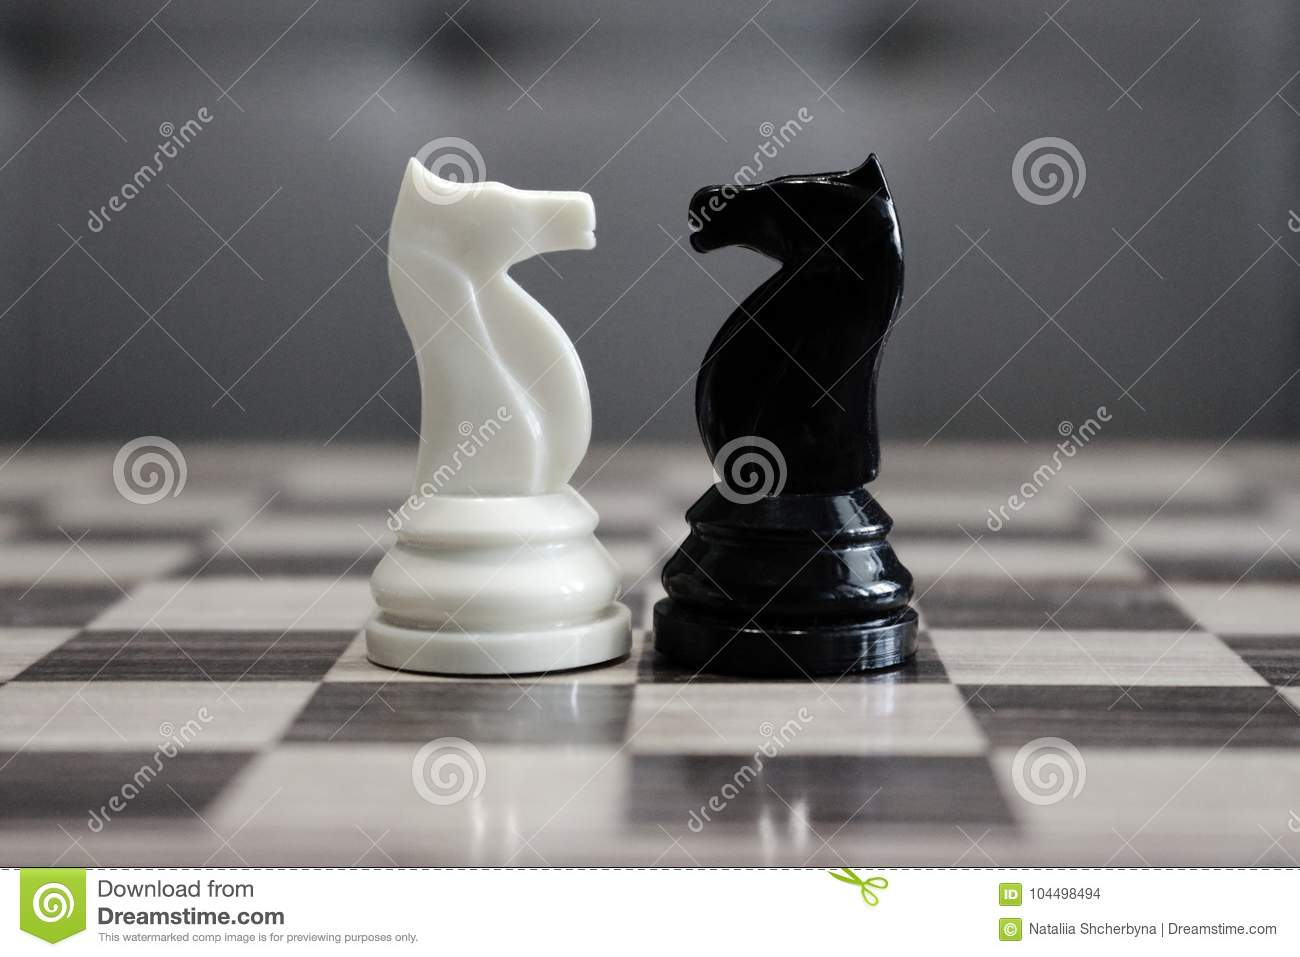 Black and white chess horses in front of each other as challenge and competition concept.